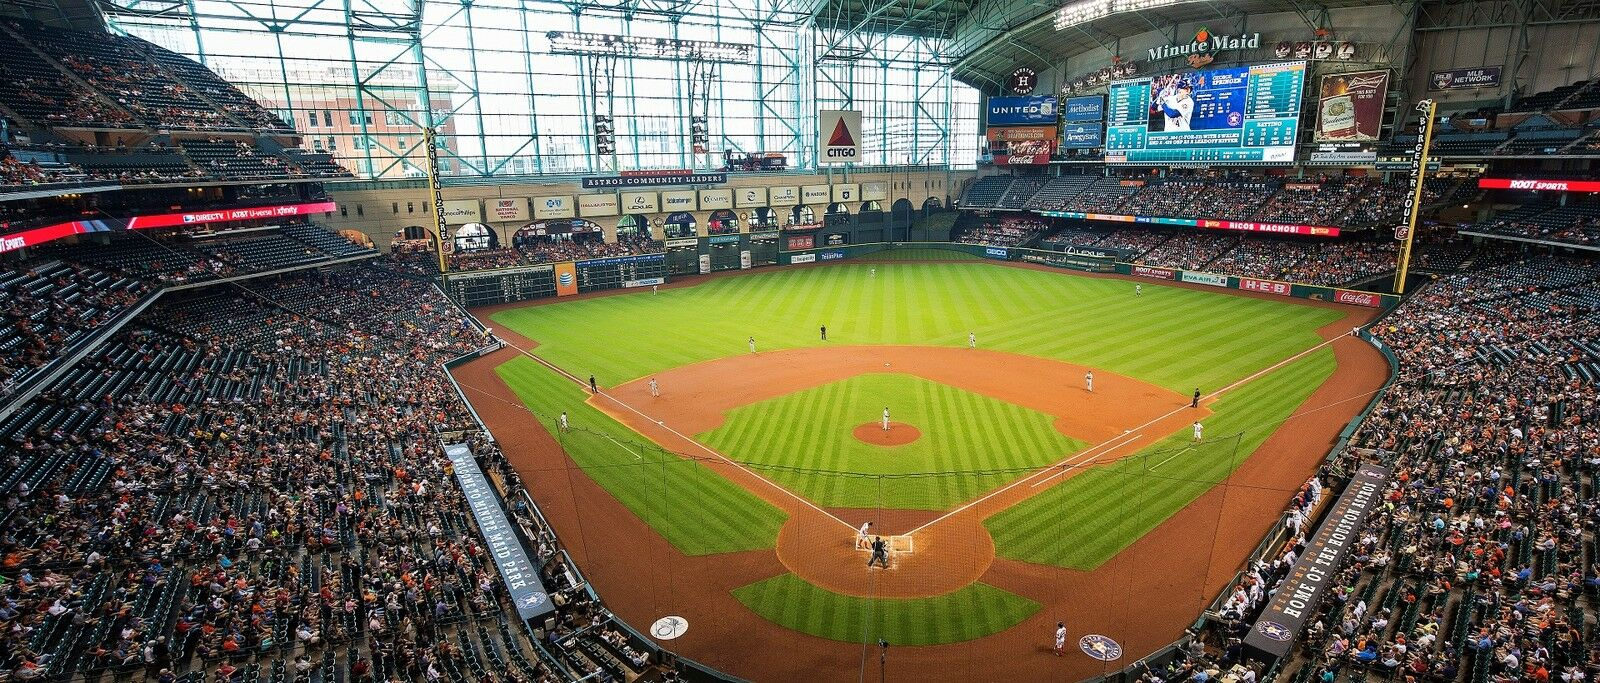 Toronto Blue Jays at Houston Astros Tickets (Bagwell 1997 Replica Jersey Giveaway and Fireworks)